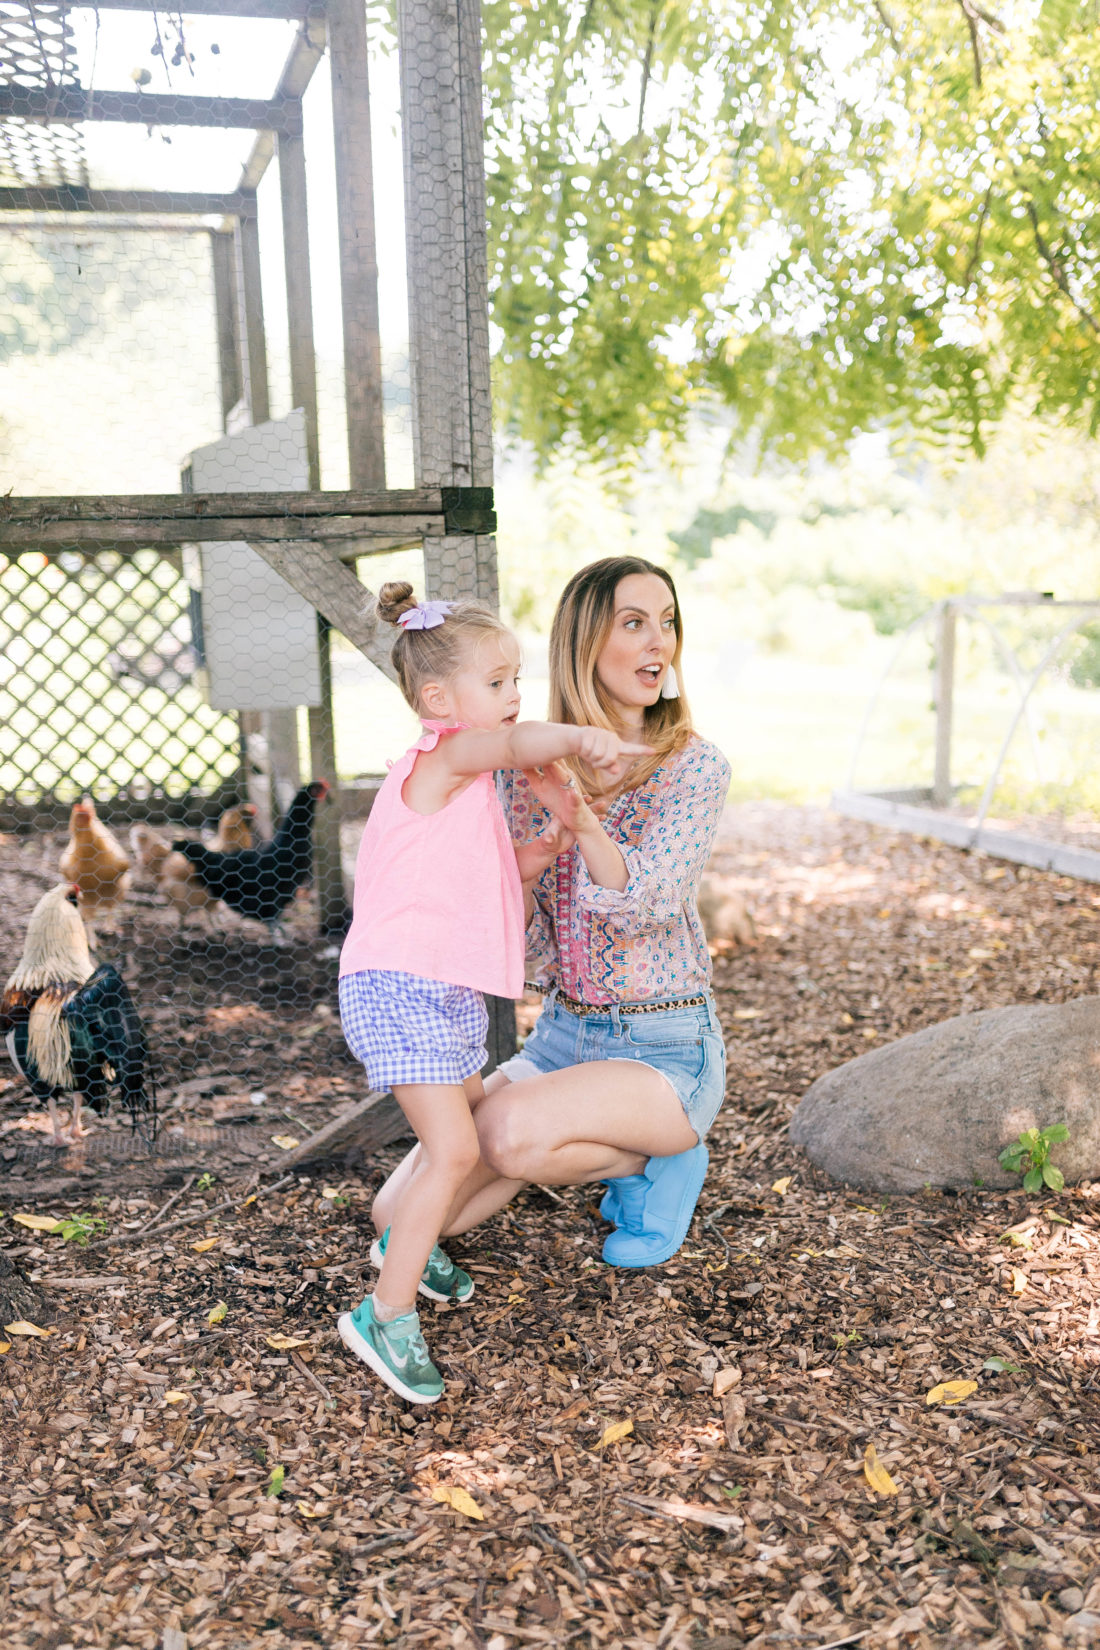 Eva Amurri Martino kneels with Marlowe Martino near the chicken coop at a local Connecticut farm